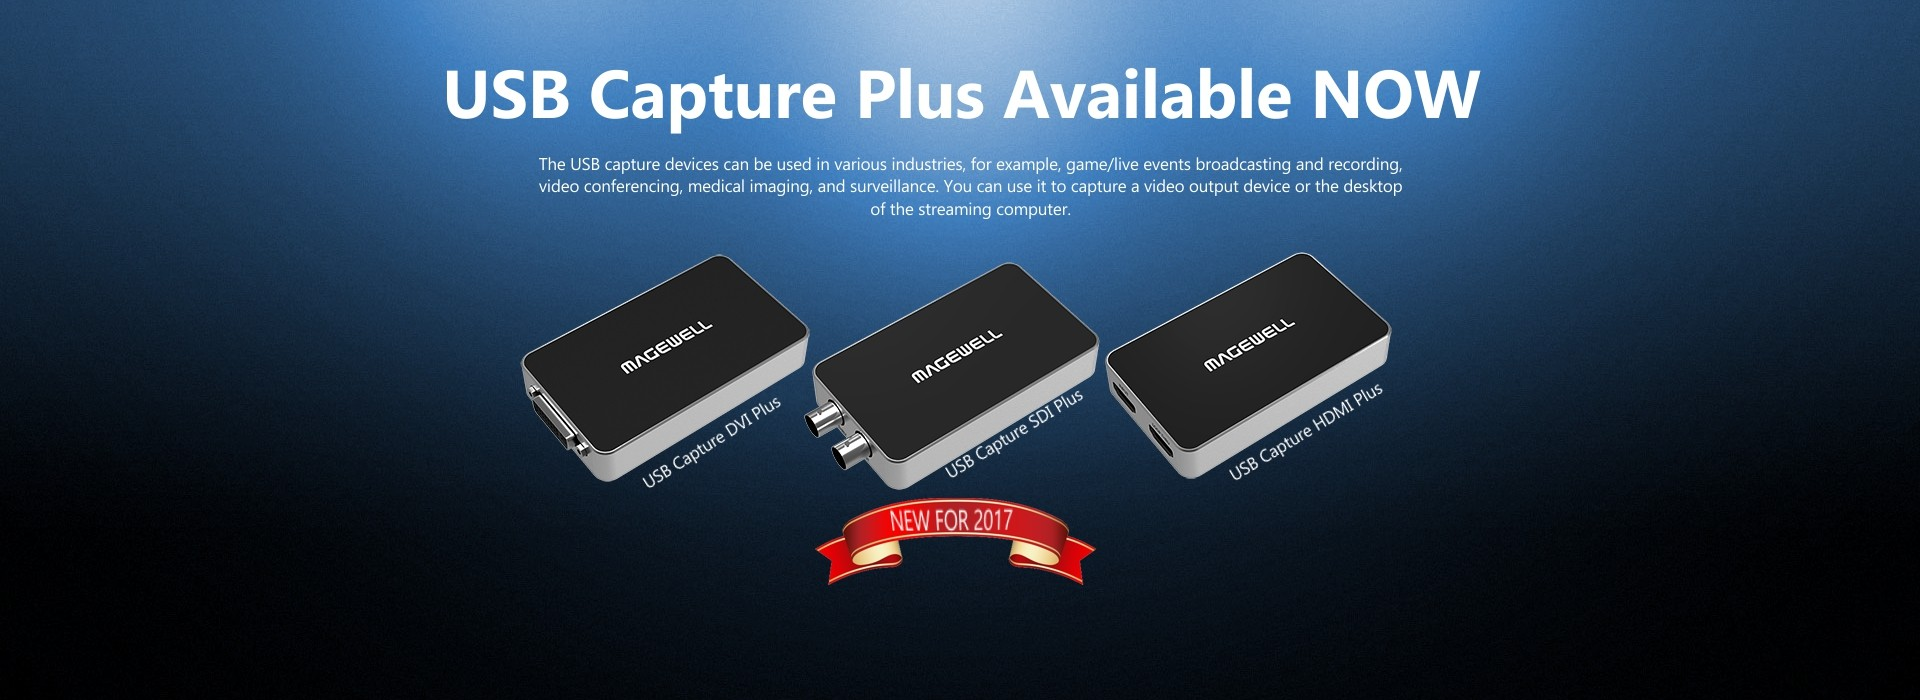 Easy to use, these USB capture devices should be what your looking for